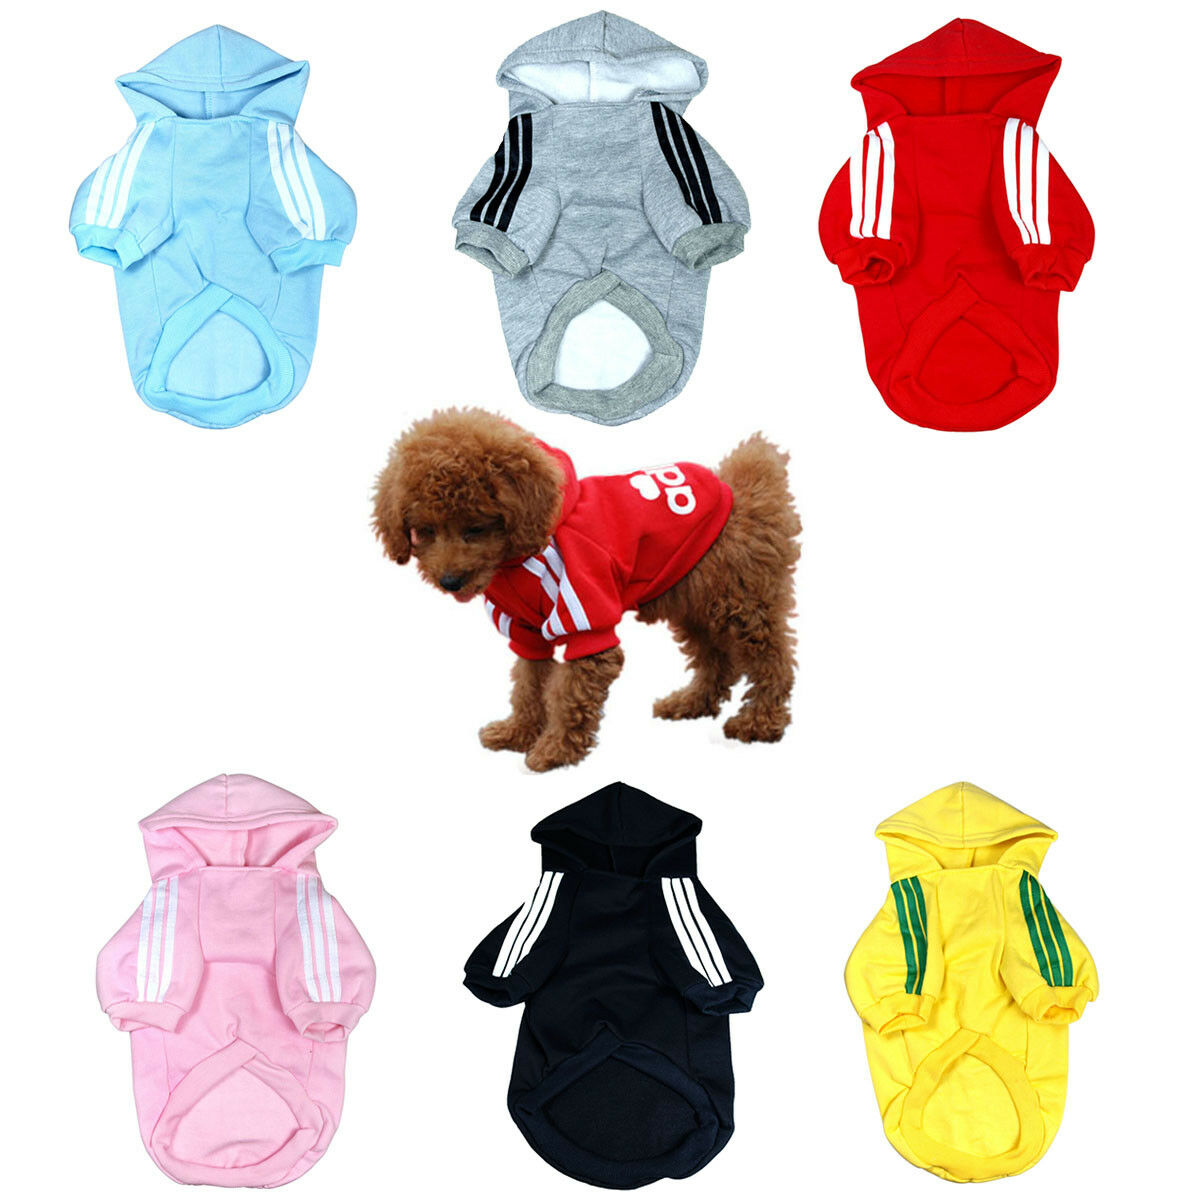 Купить Puppy N Kitten PNK-CLTH-HDIE-GRP-001 - Adidog Puppy Hoodie Sweater Pullover Sweatshirt Warm Clothing for Dog Pet